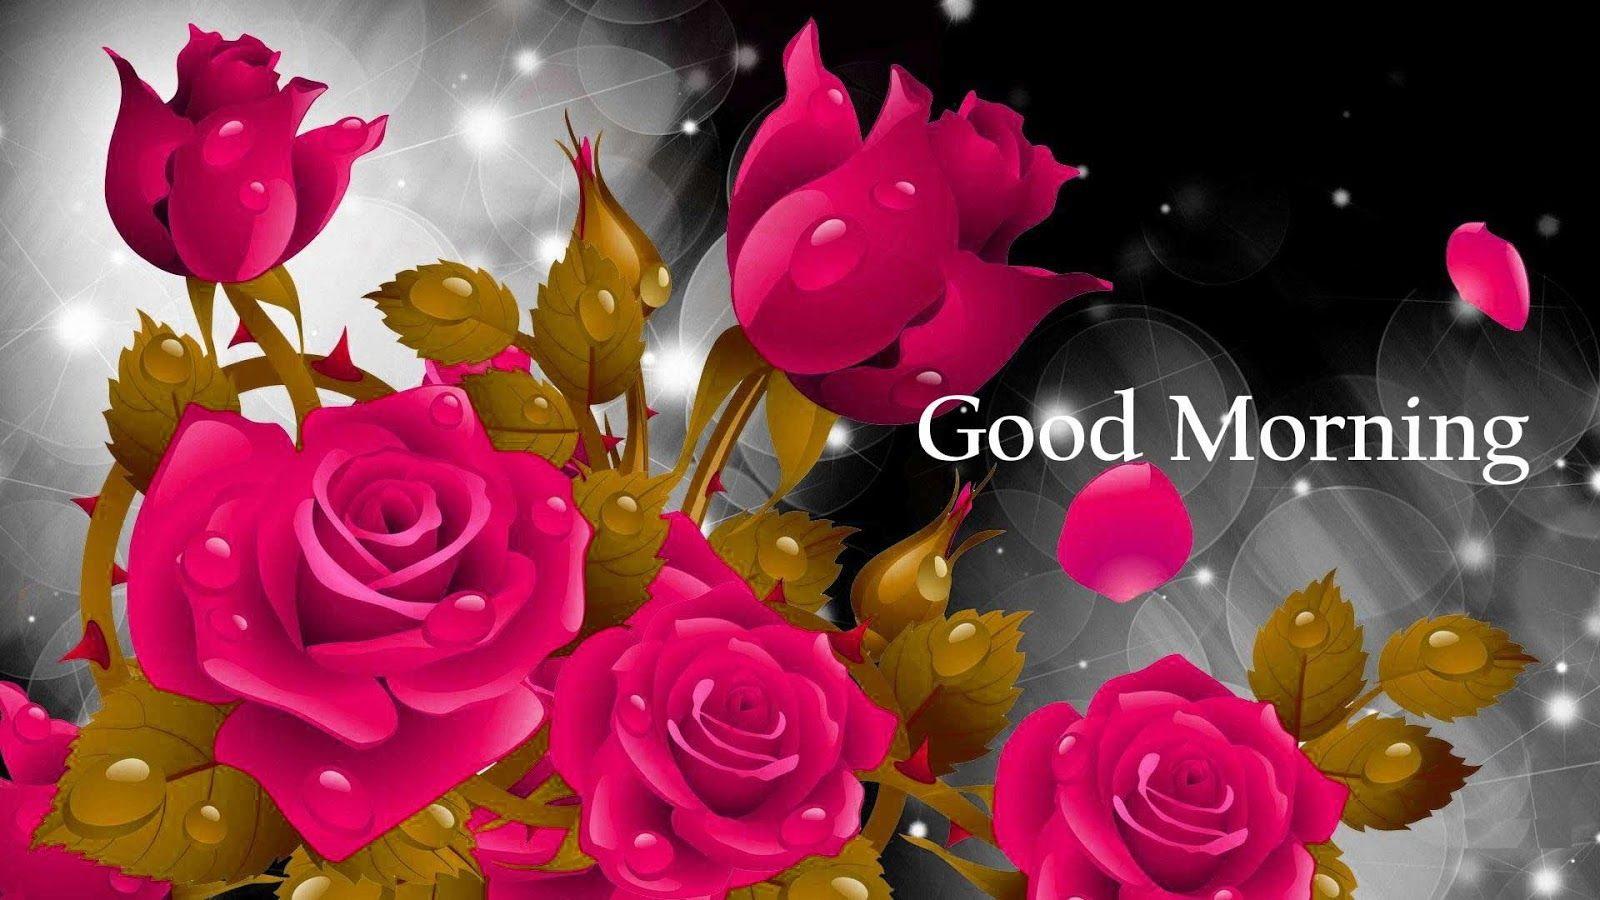 Good Morning Images with Rose Rose flower wallpaper, Red